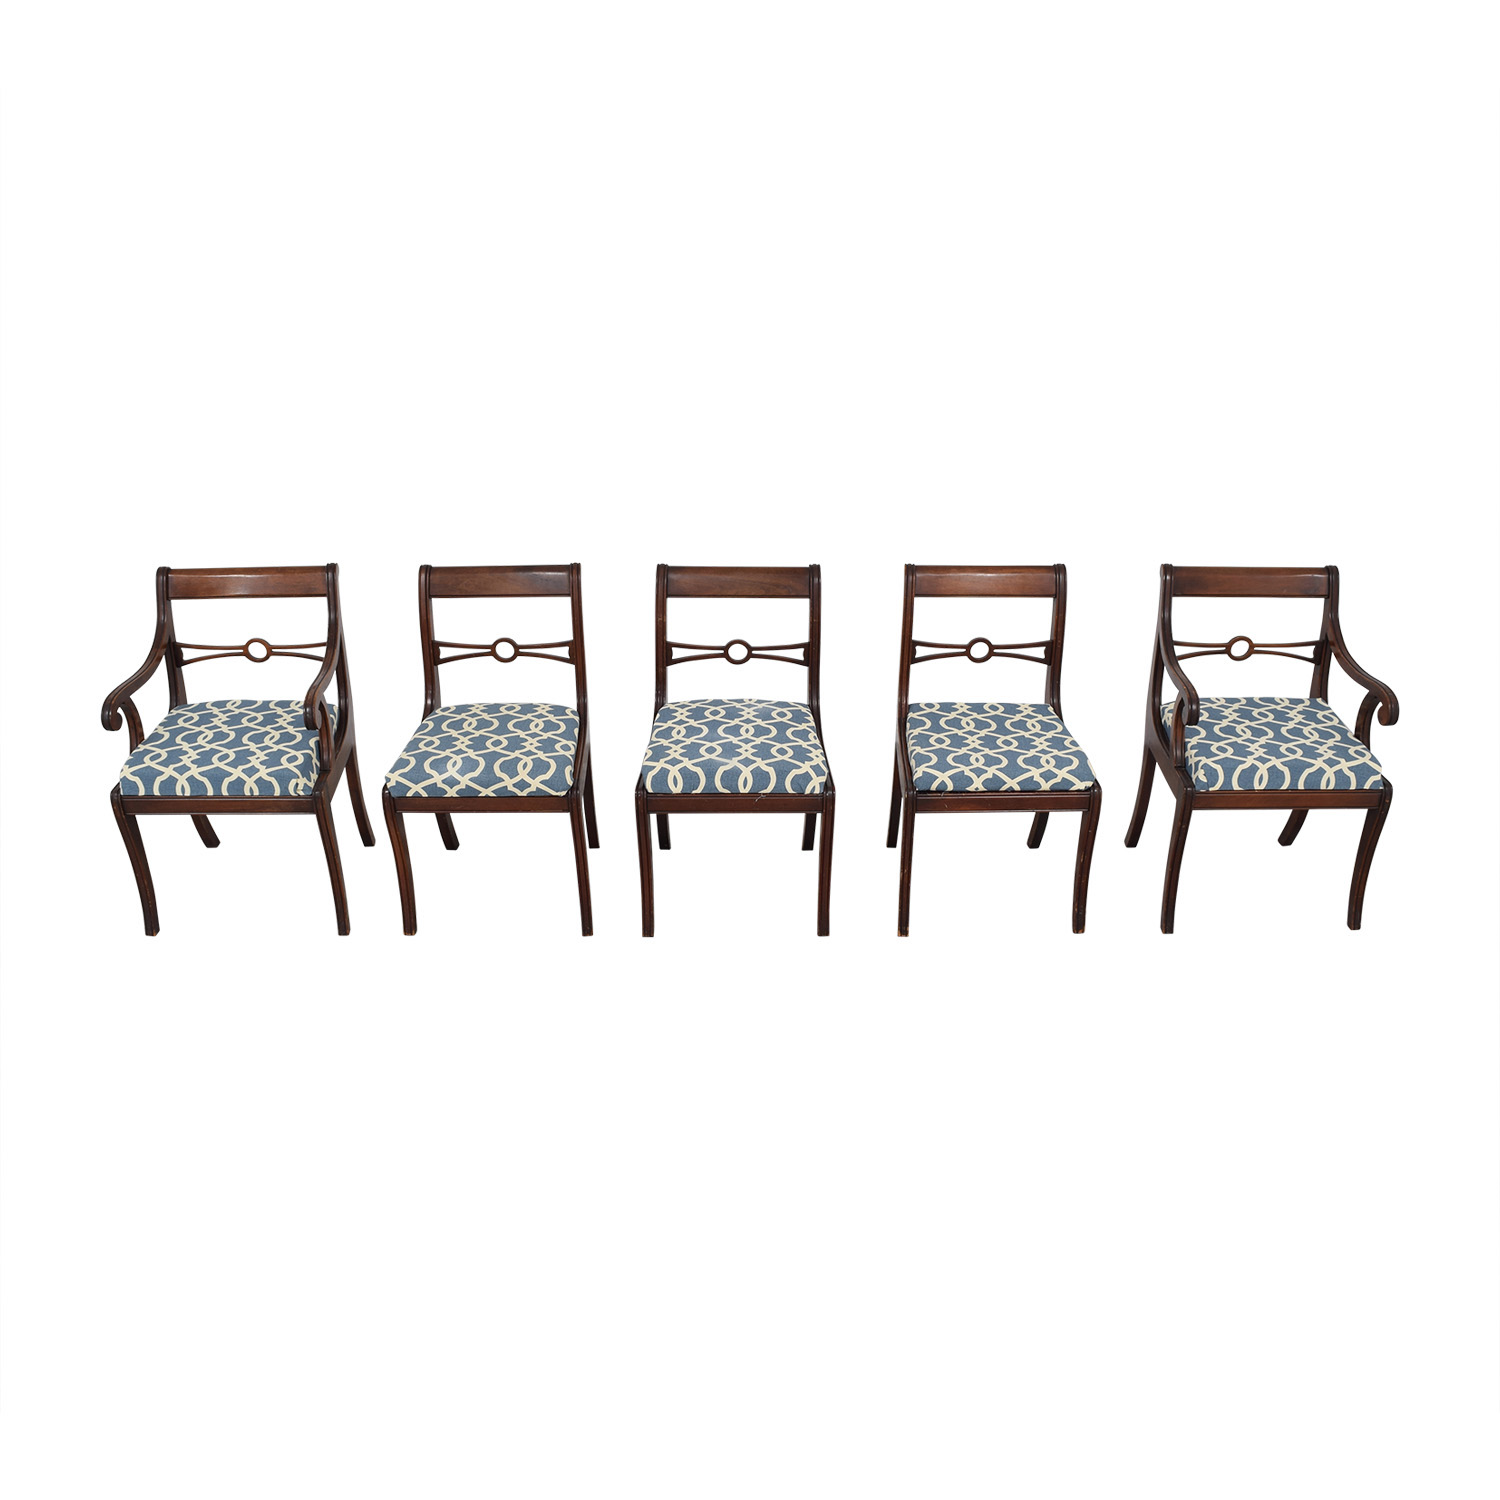 Upholstered Dining Room Chairs brown & blue